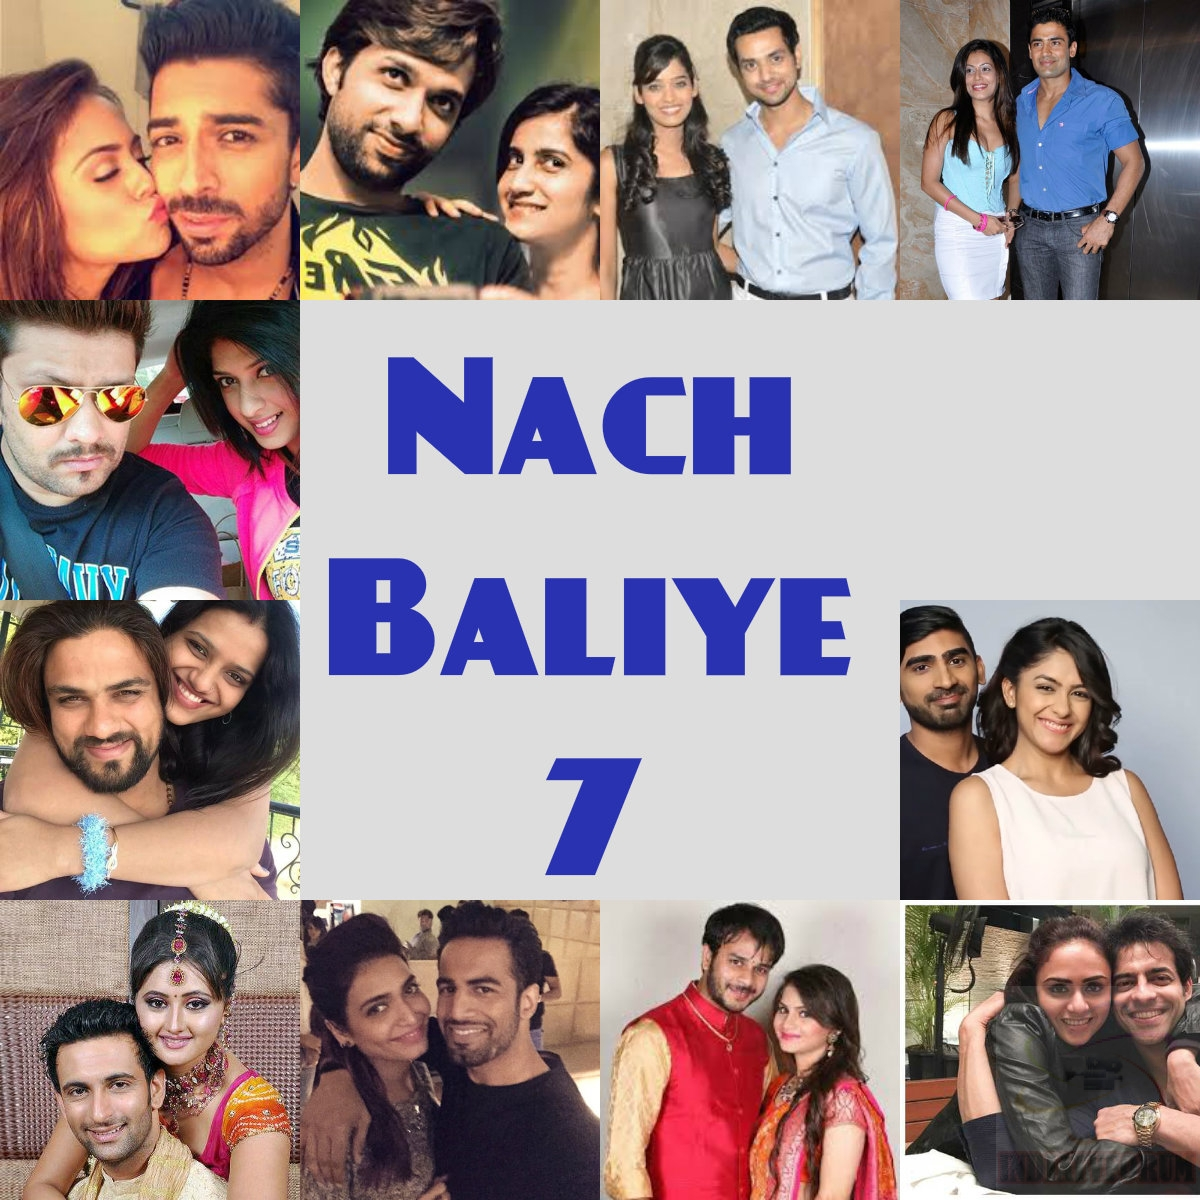 Nach Baliye Too Much Today Ep Elimination Winner Semi Finalist 12 July 2015 Show Video